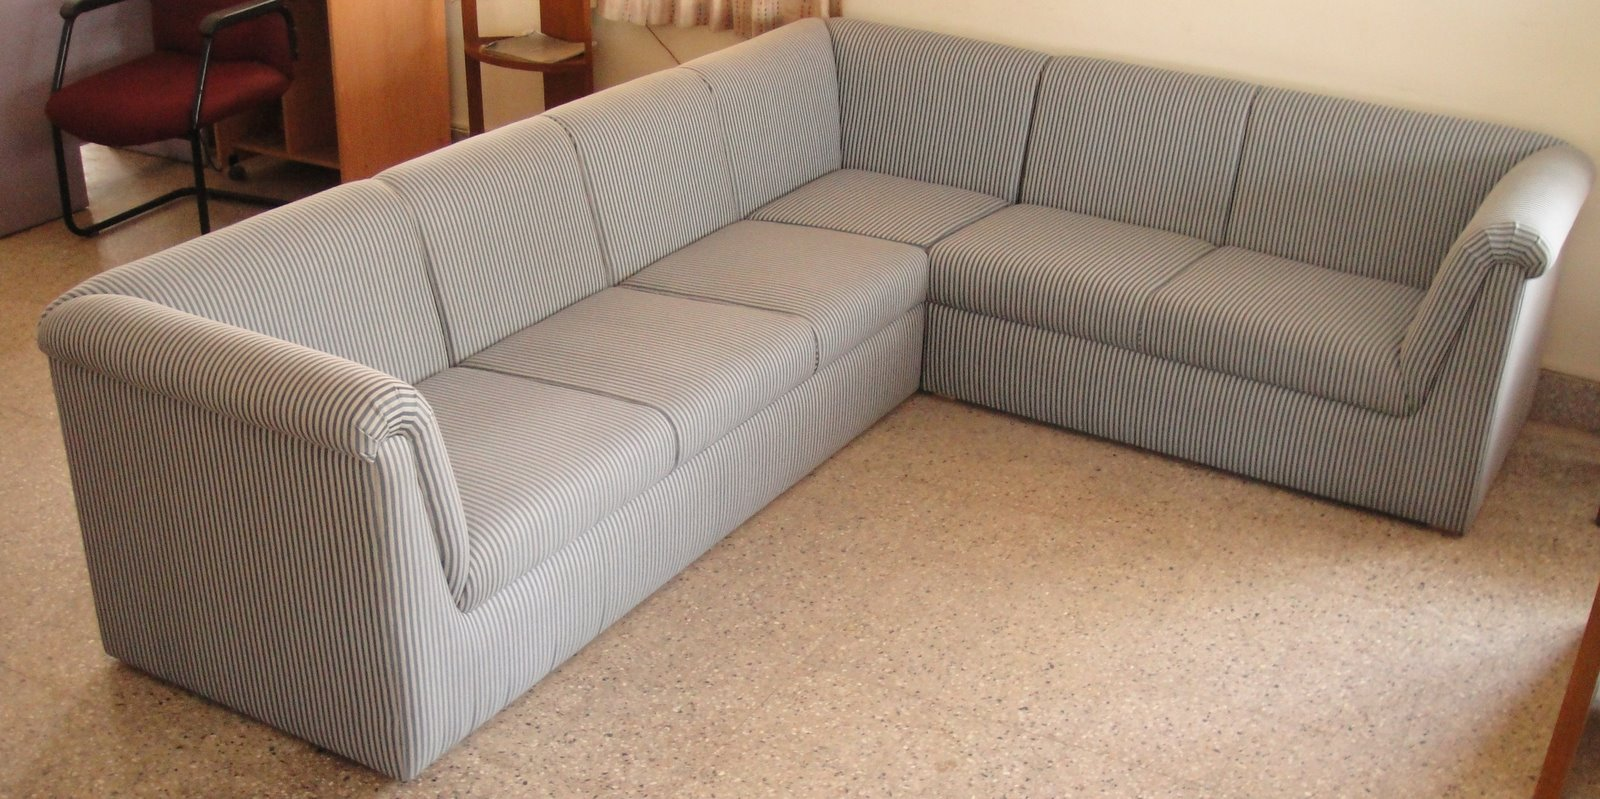 Sofa set deals in bangalore design for Sofa set deals